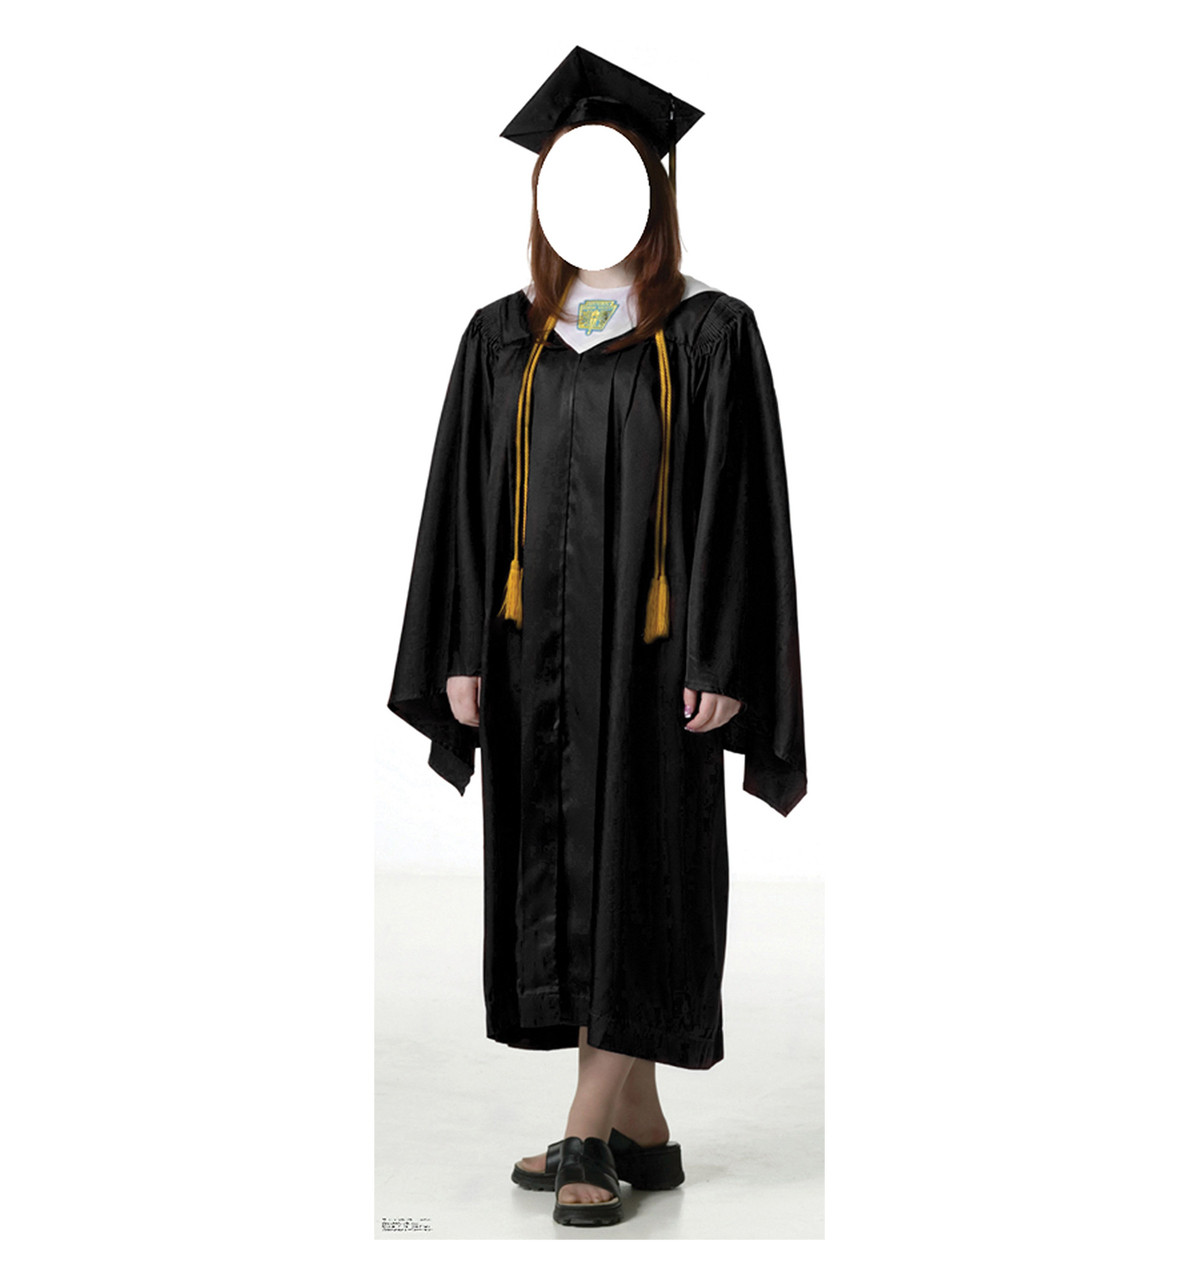 Life-size Female Graduate Black Cap and Gown Cardboard Standup ...